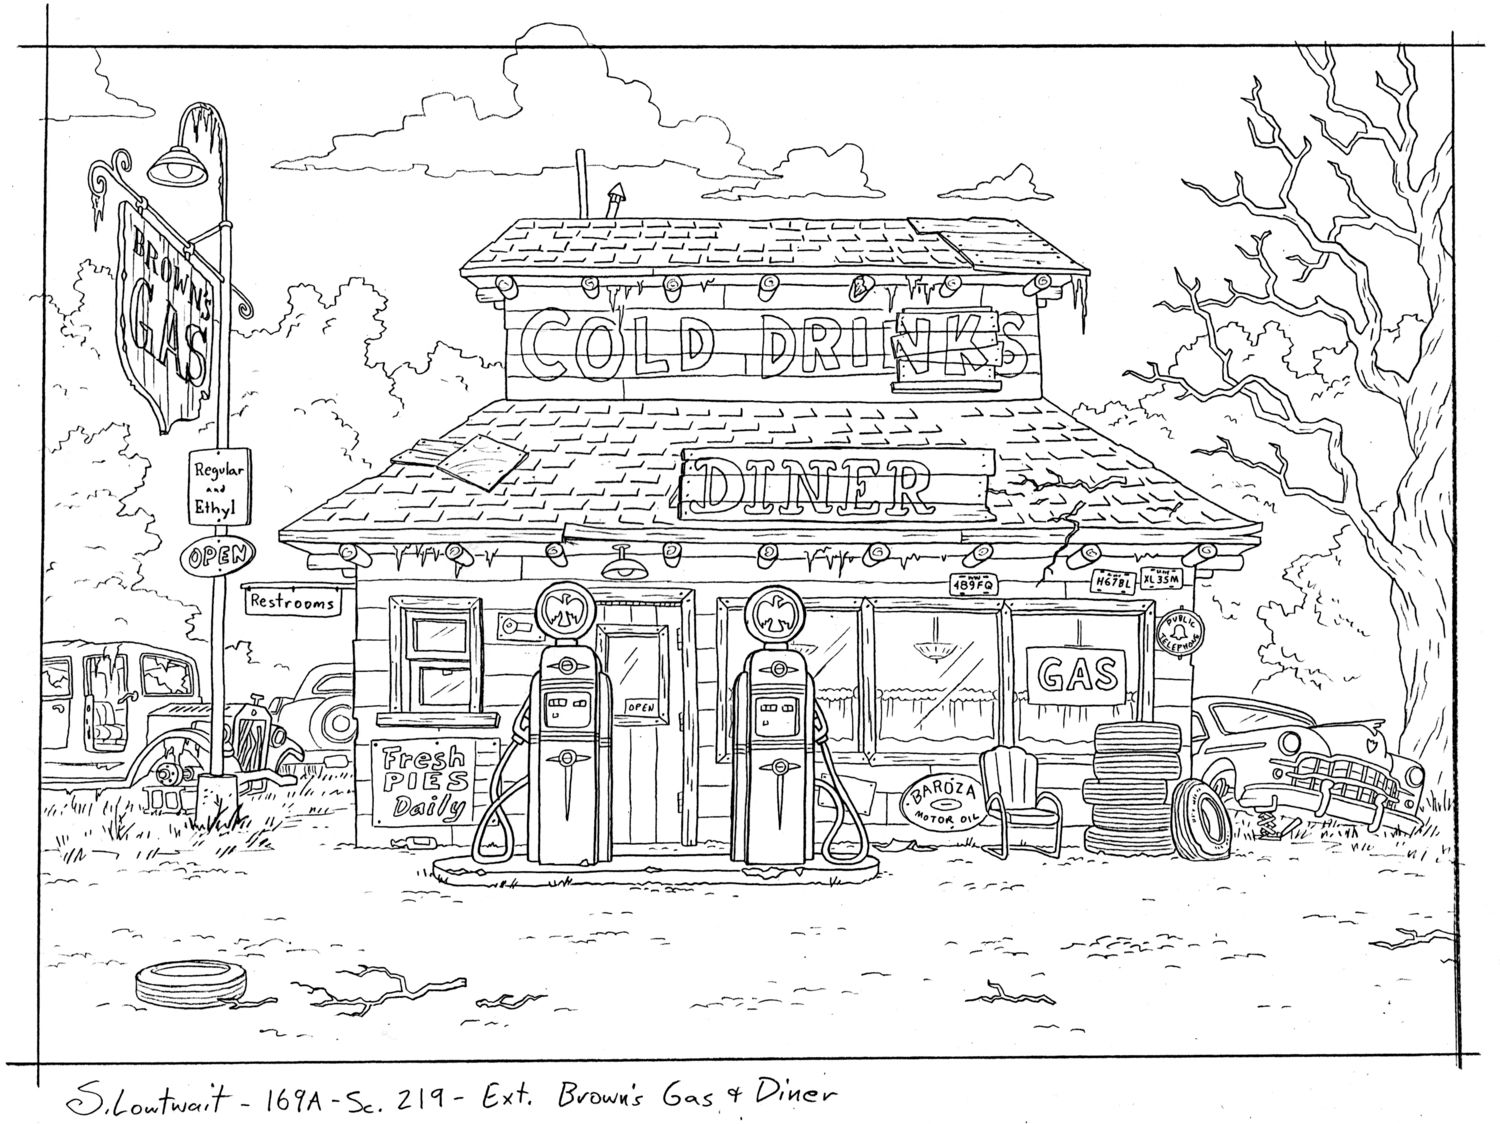 Hey Arnold Backgrounds Hey Arnold Animation Background Concept Art